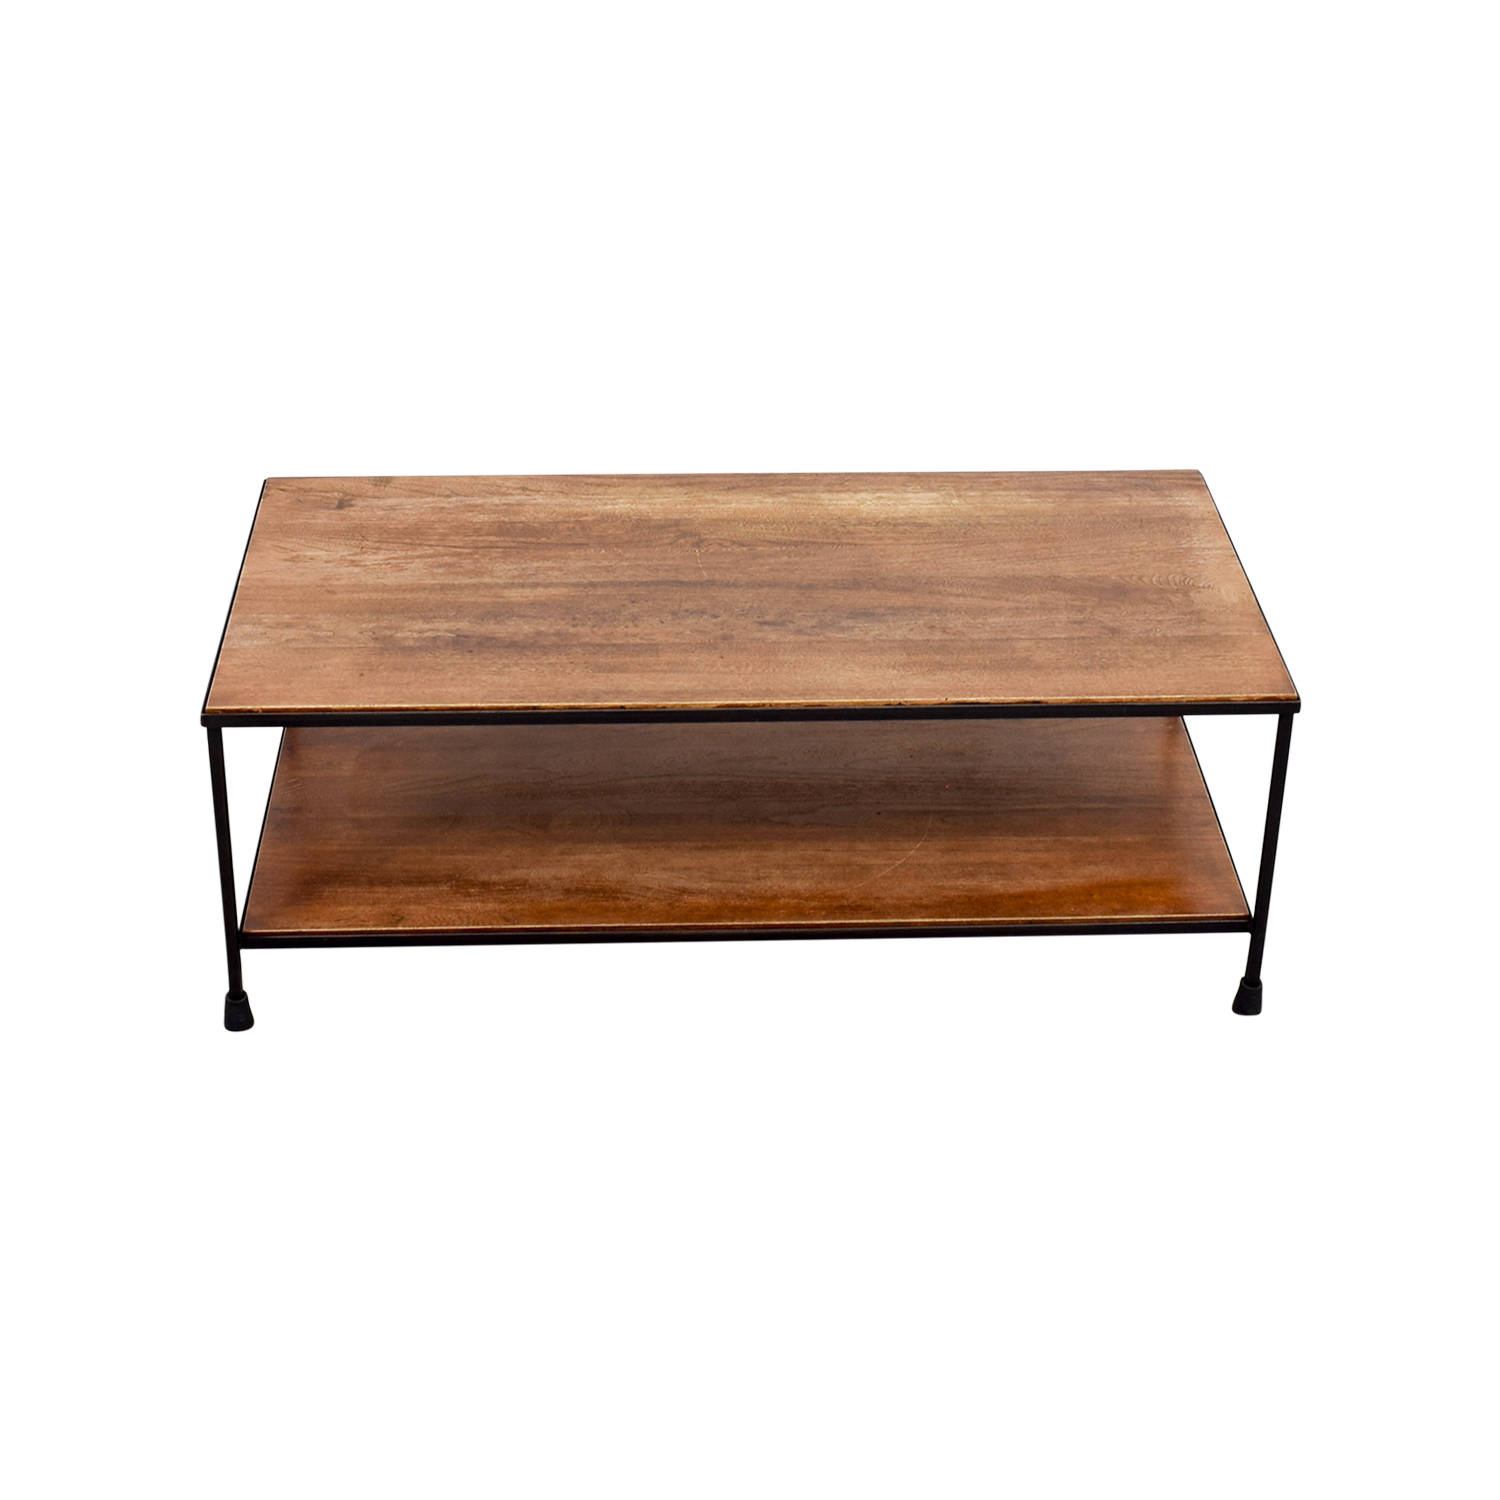 OFF Pottery Barn Pottery Barn Wood And Metal Coffee Table Tables - Pottery barn small coffee table